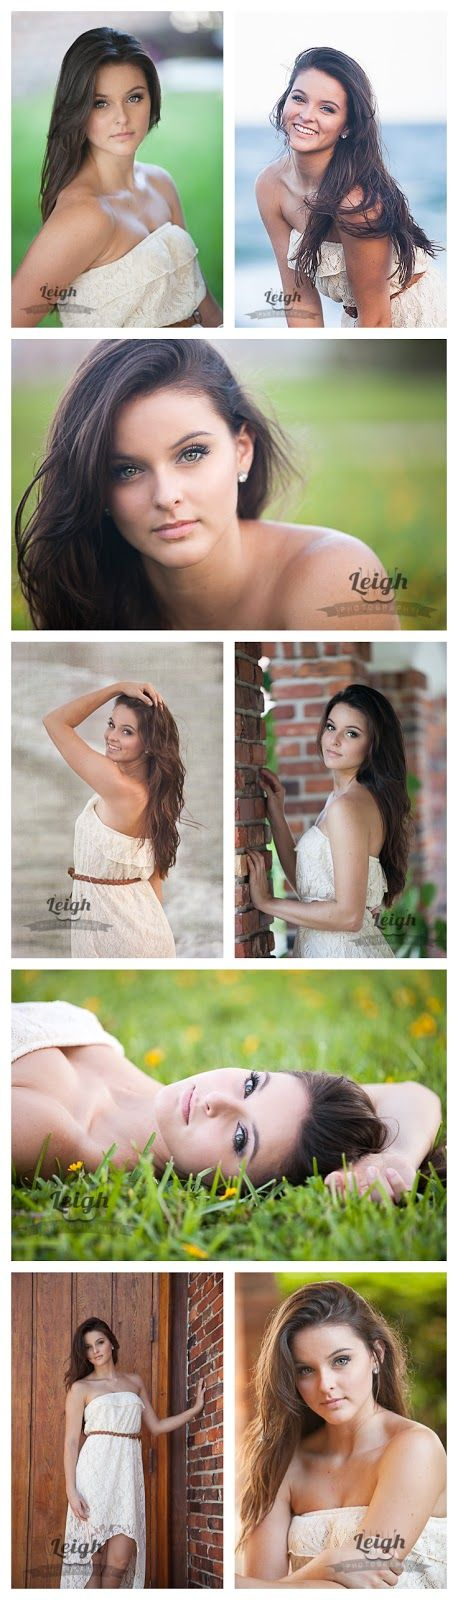 Senior Girl Photography Inspiration